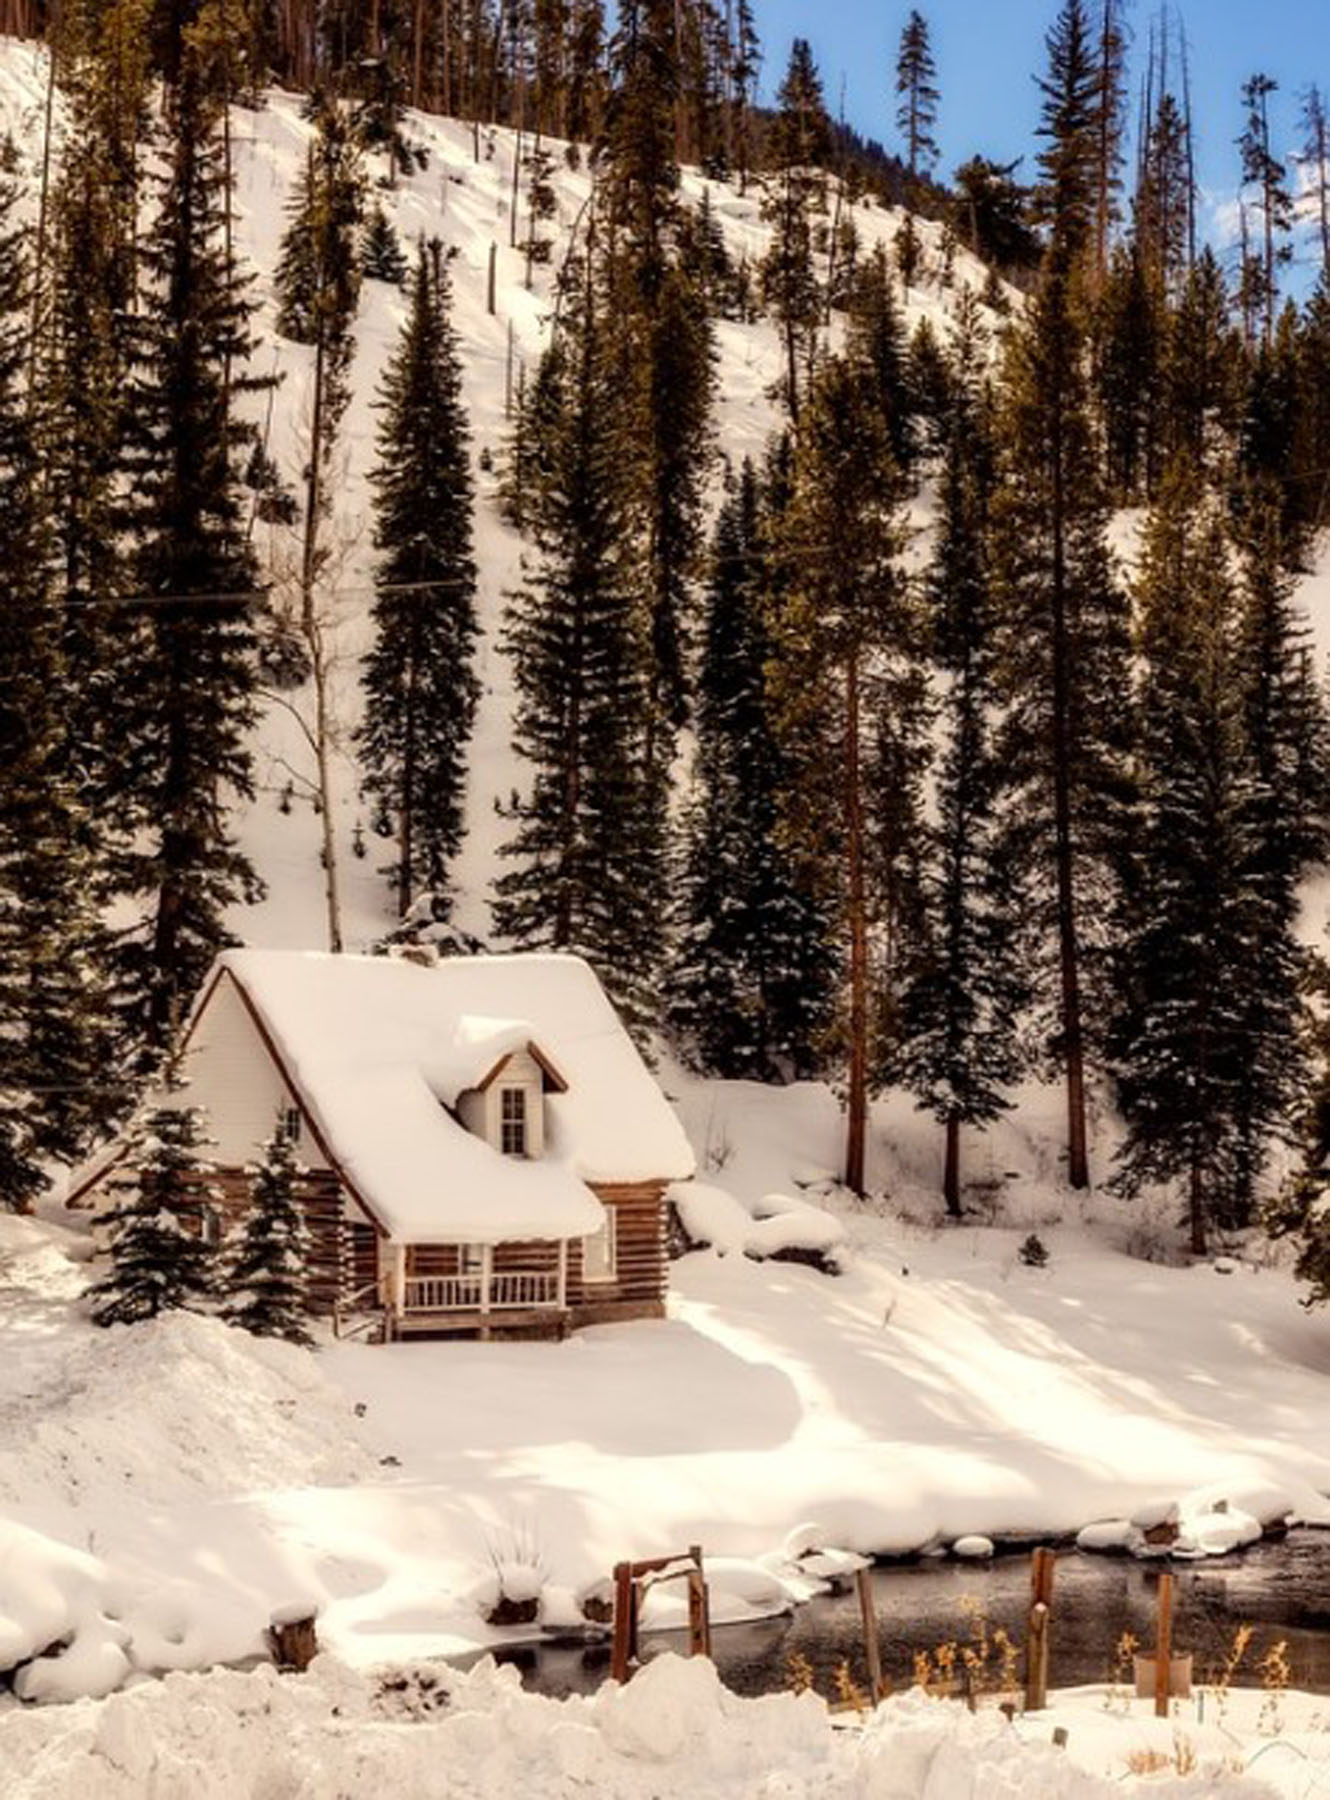 Cabin in the snow, courtesy of Pixabay.